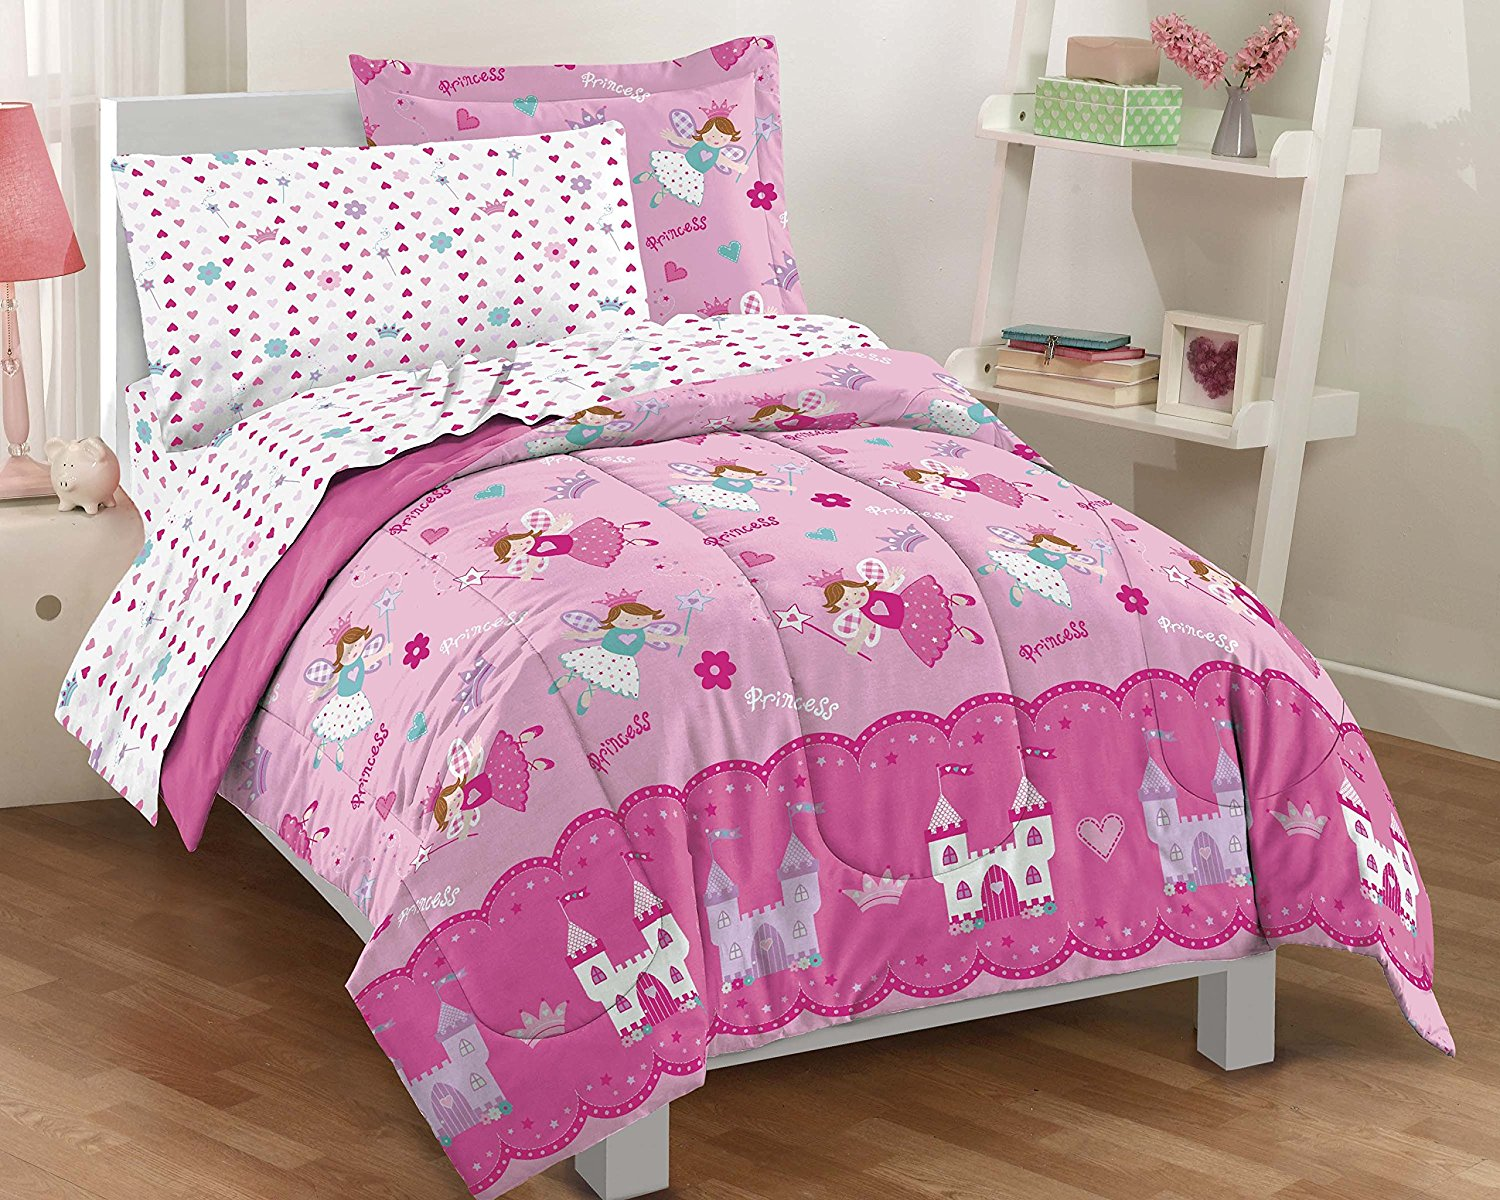 Image of: Girls Kids Twin Bedding Sets